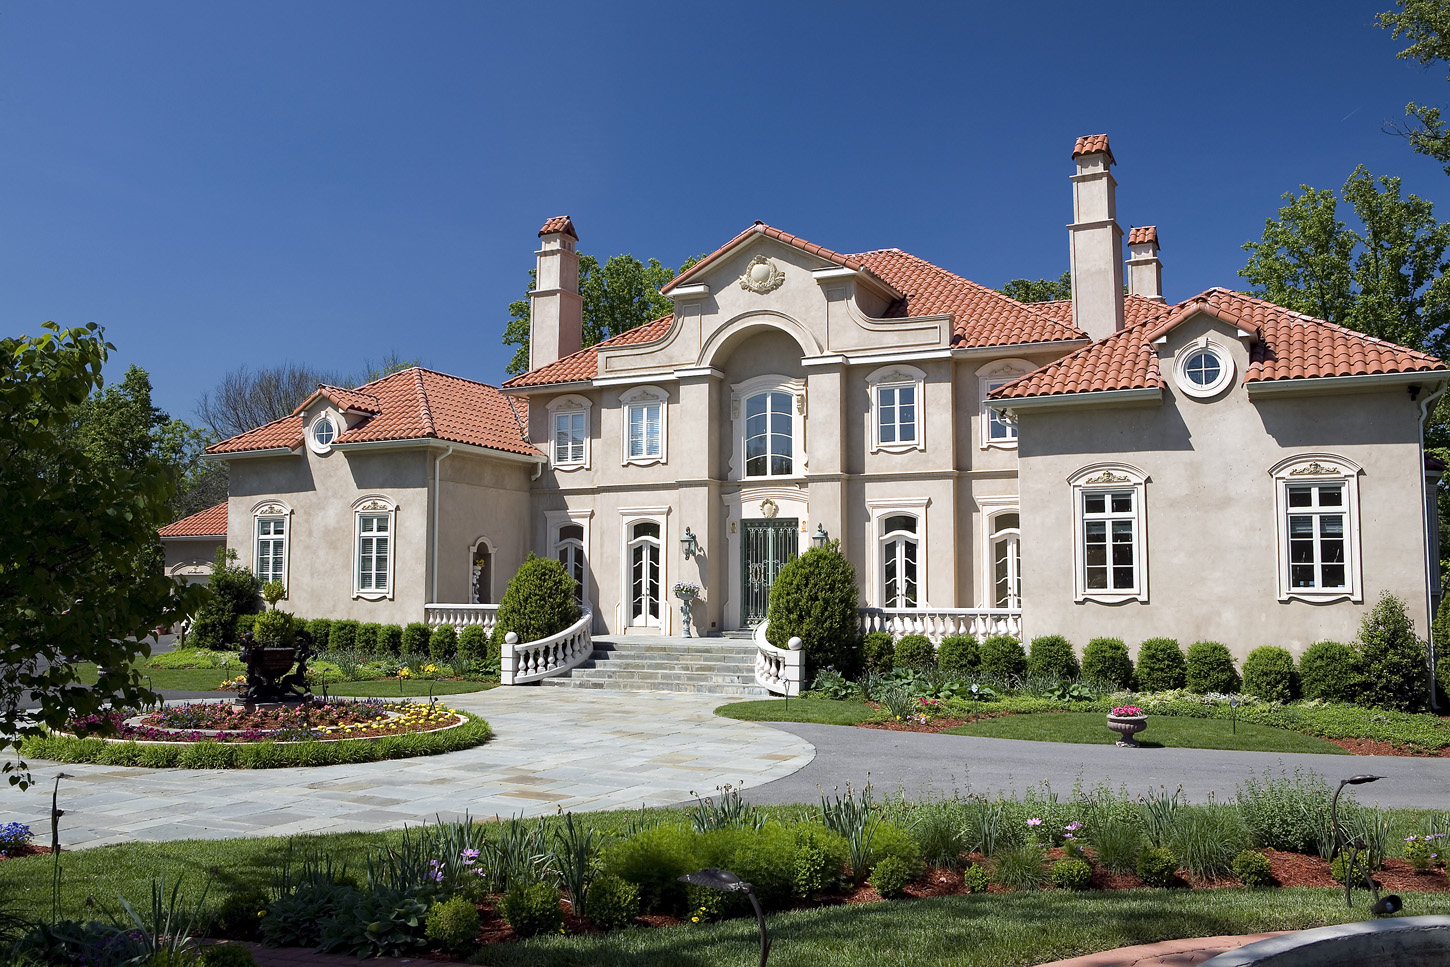 Exterior of mansion with circular driveway with fountain in Potomac, Maryland